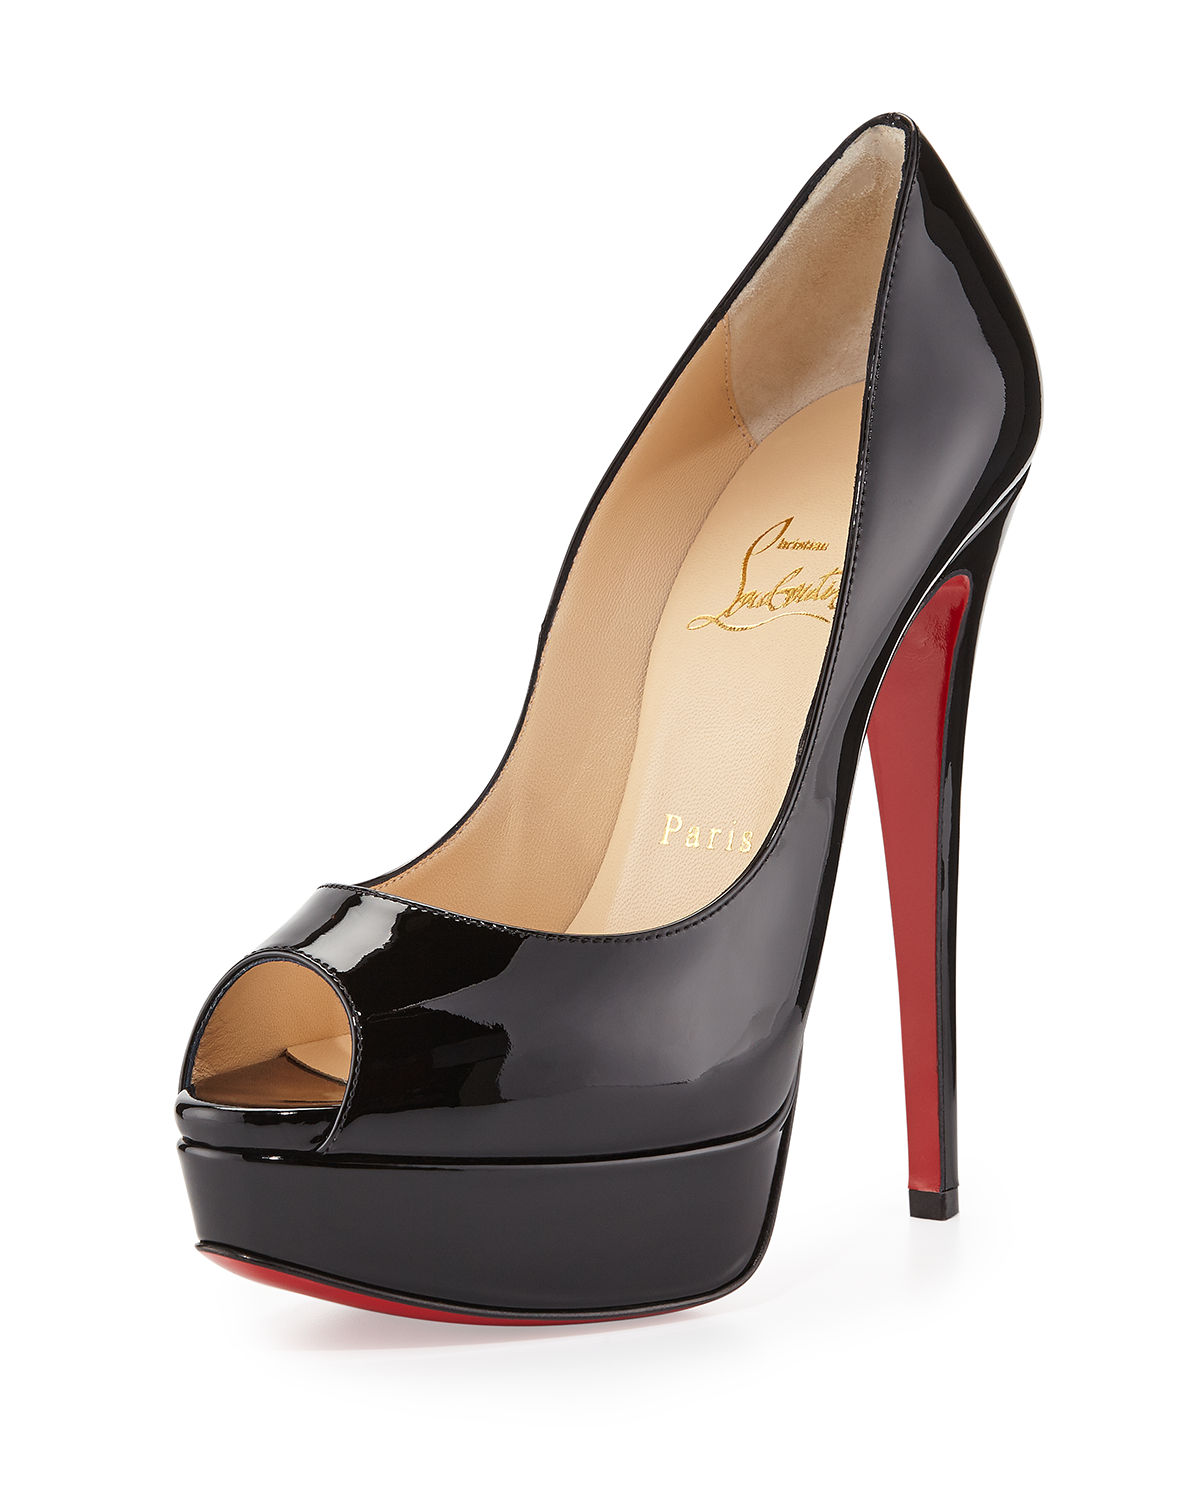 d5c5fb172de4 Christian Louboutin Lady Peep Patent Red Sole Pump